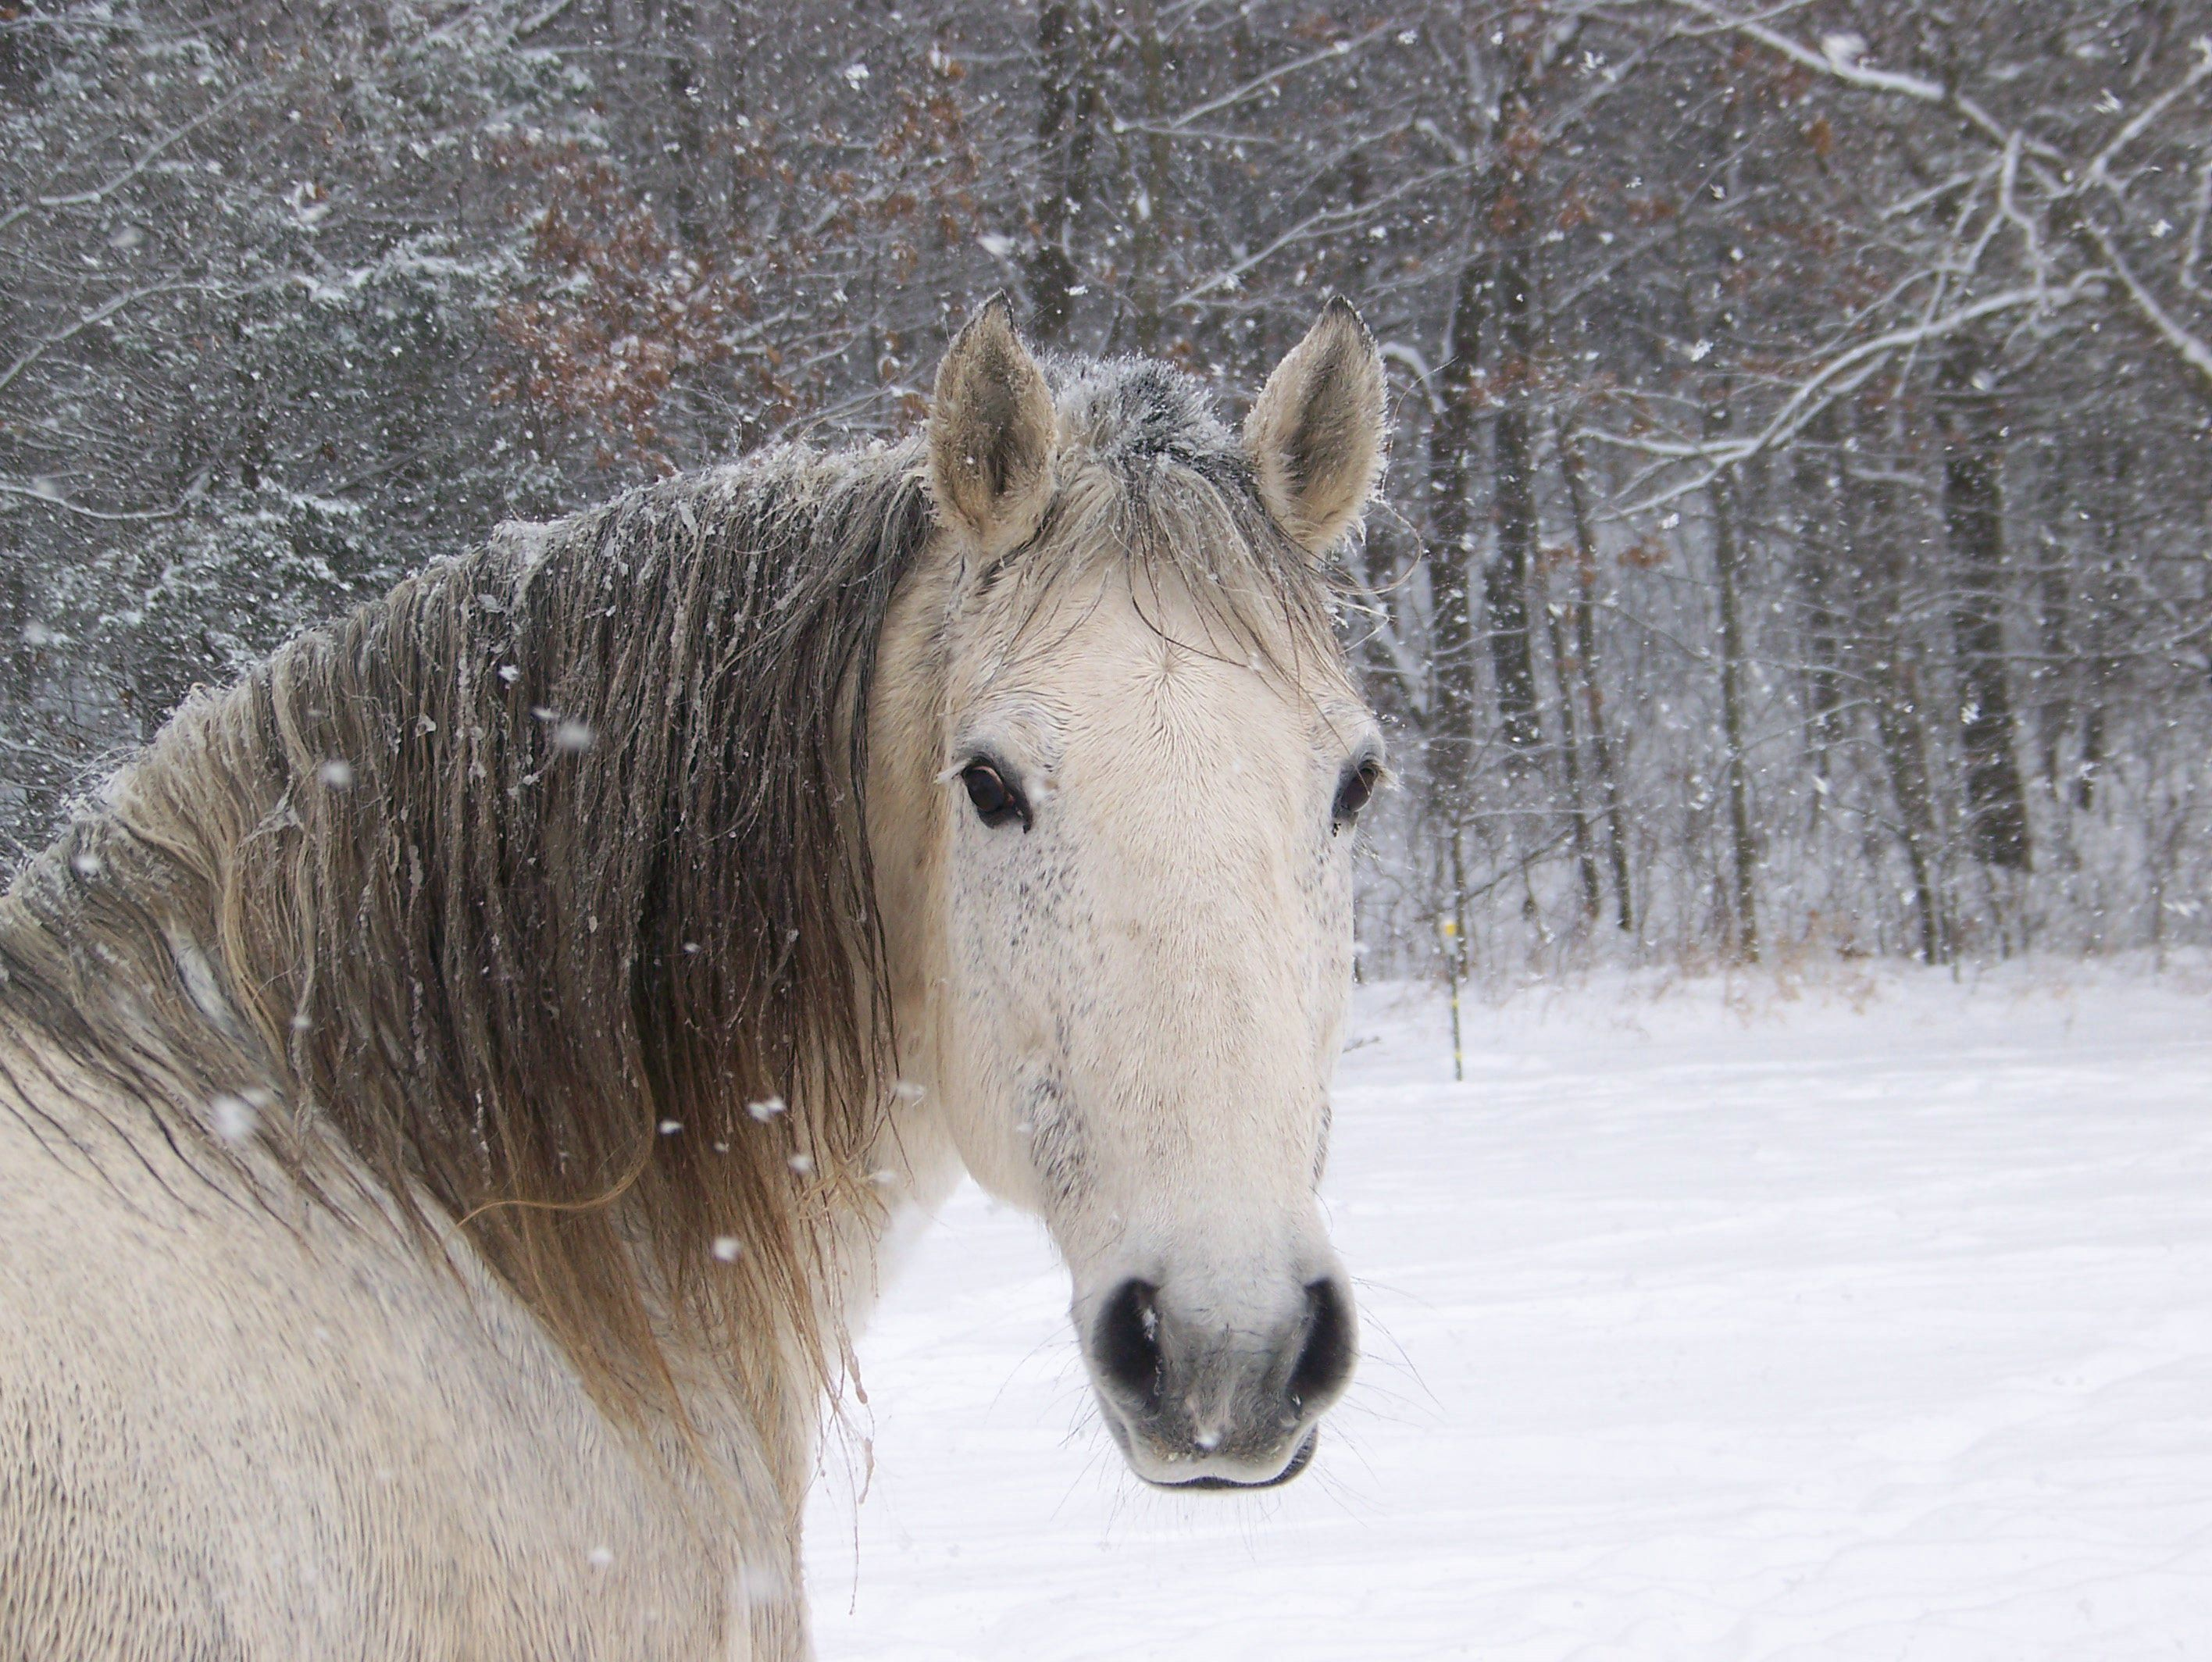 Horses are really cute animals and remained faithful with the human ...